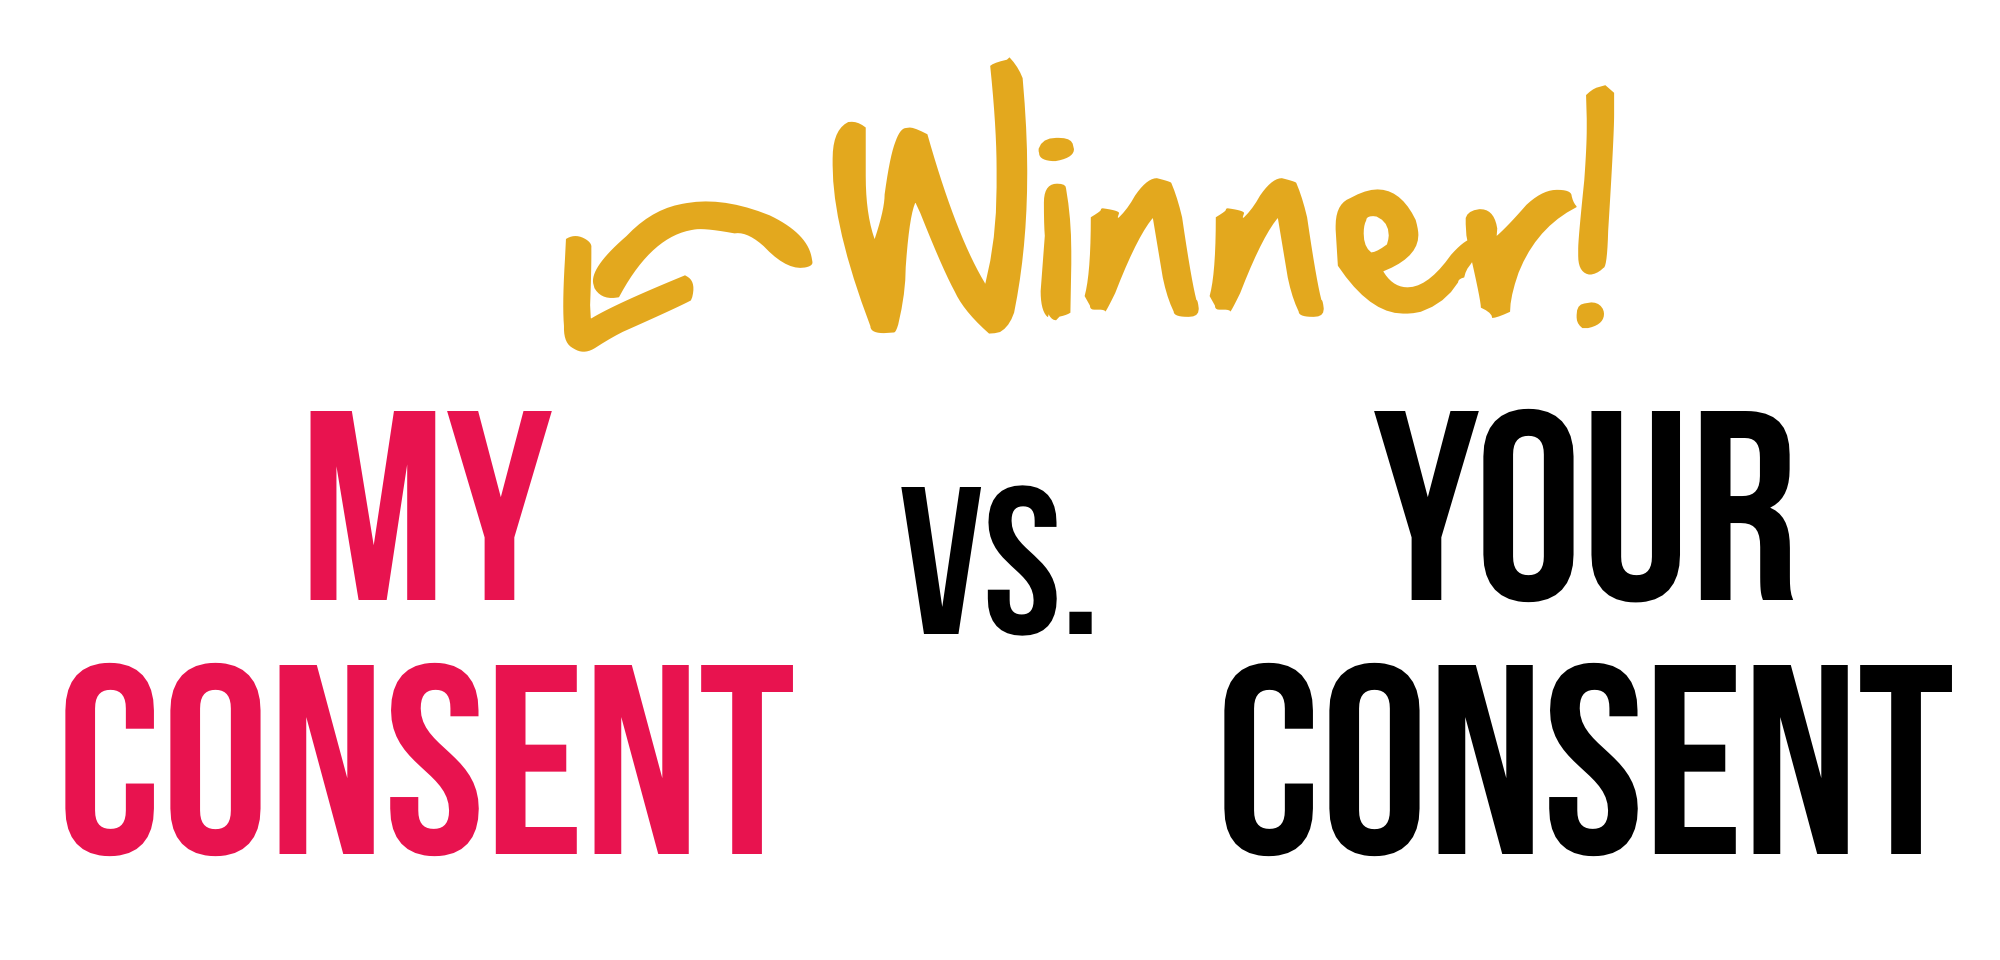 My Consent Versus Your Consent